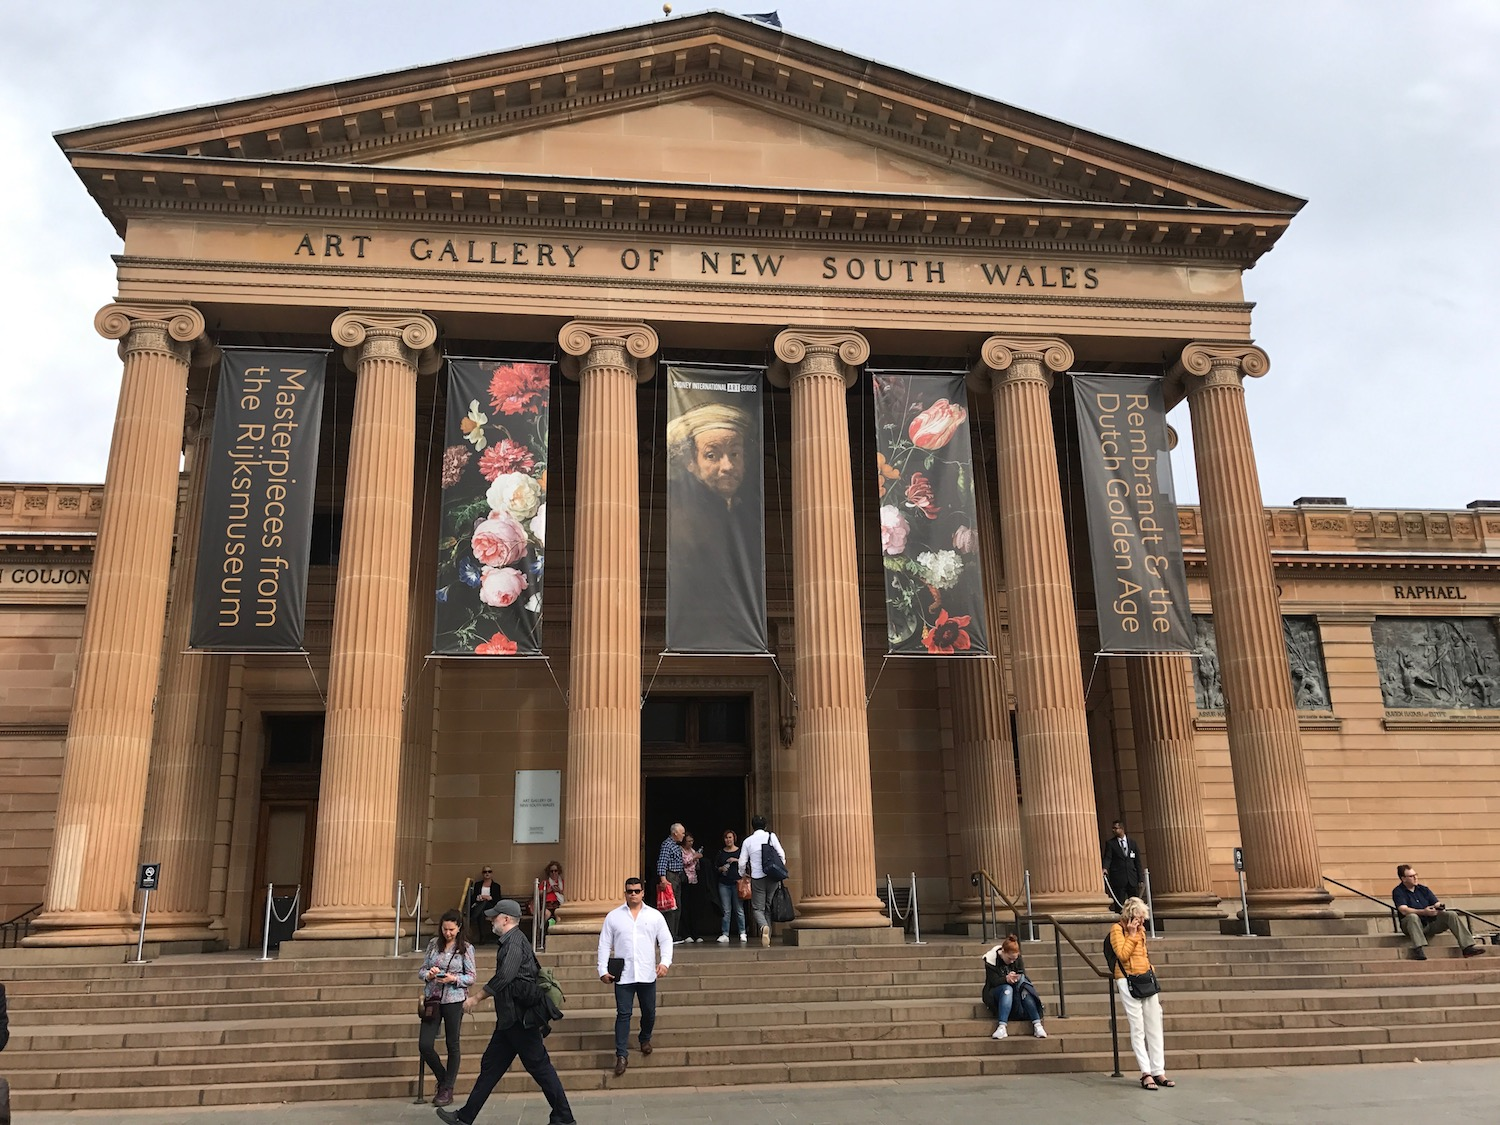 The must see Art Gallery of New South Wales